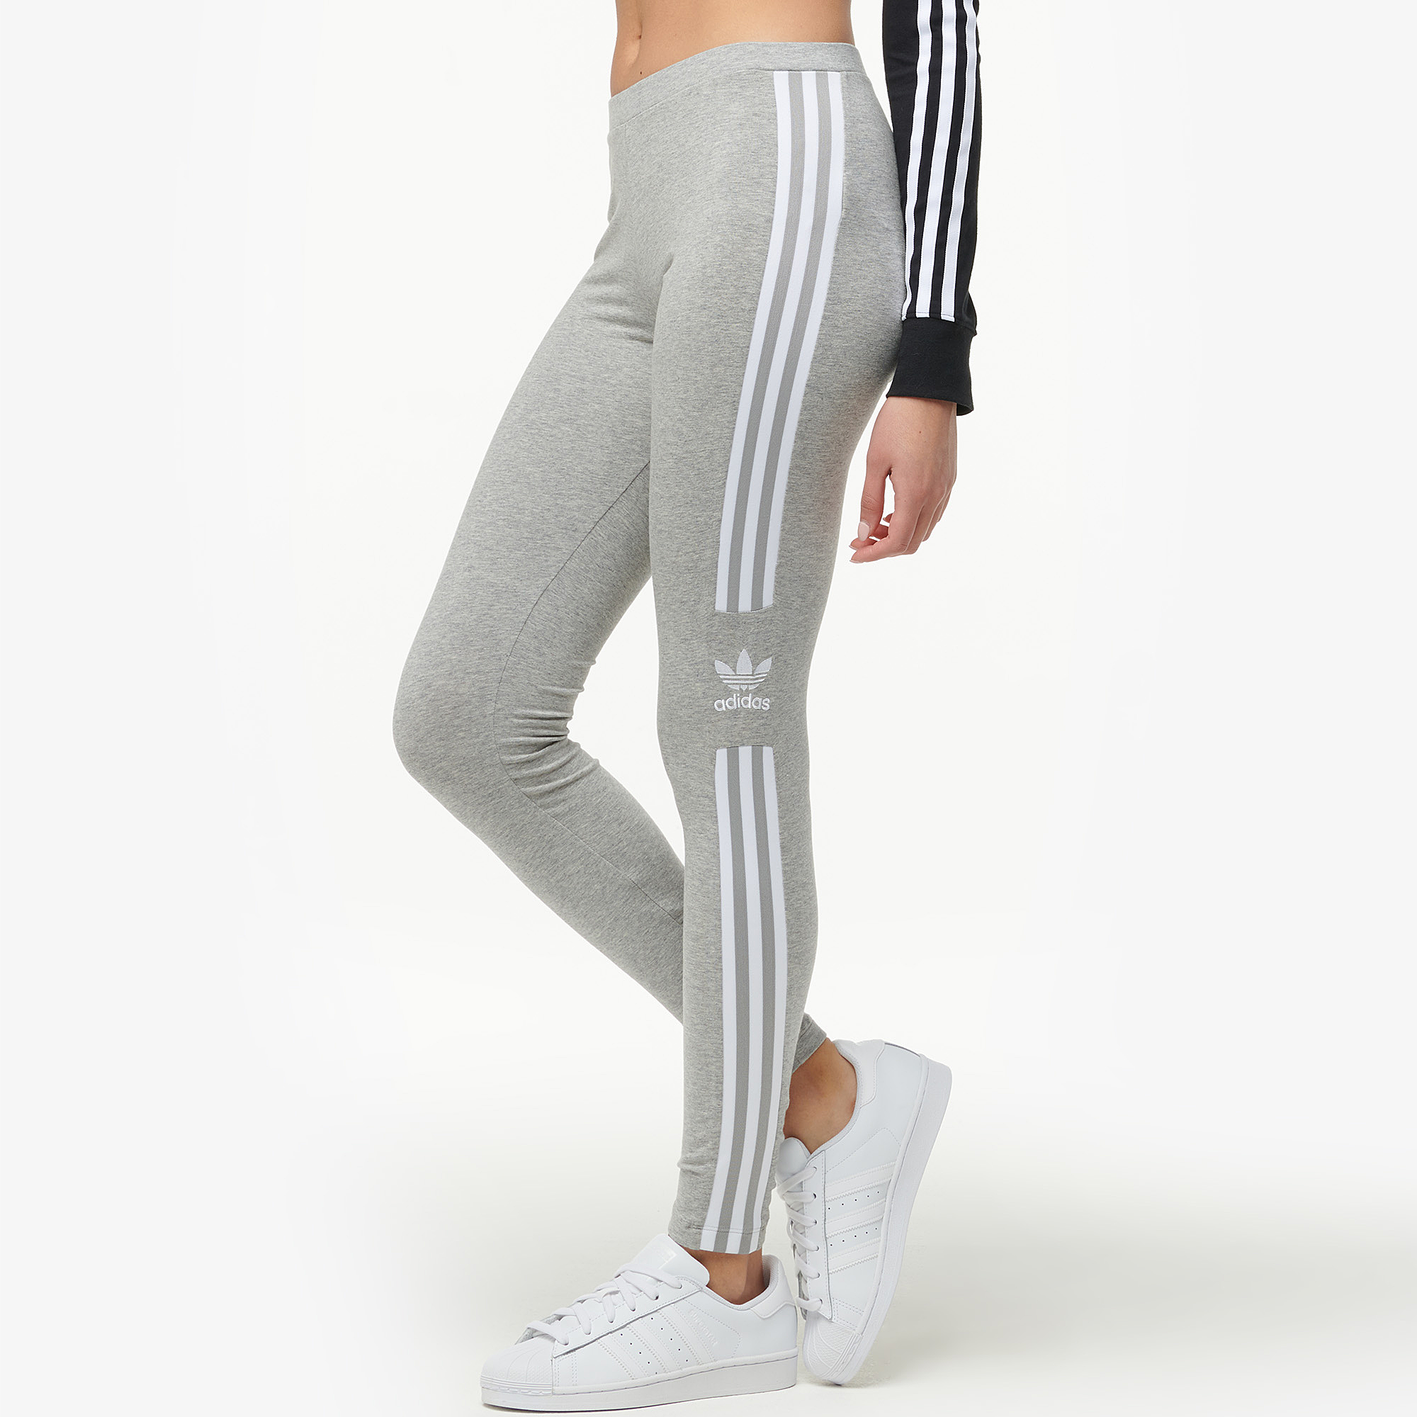 4395ec92eba adidas Originals Adicolor New Trefoil Leggings - Women's - Casual ...